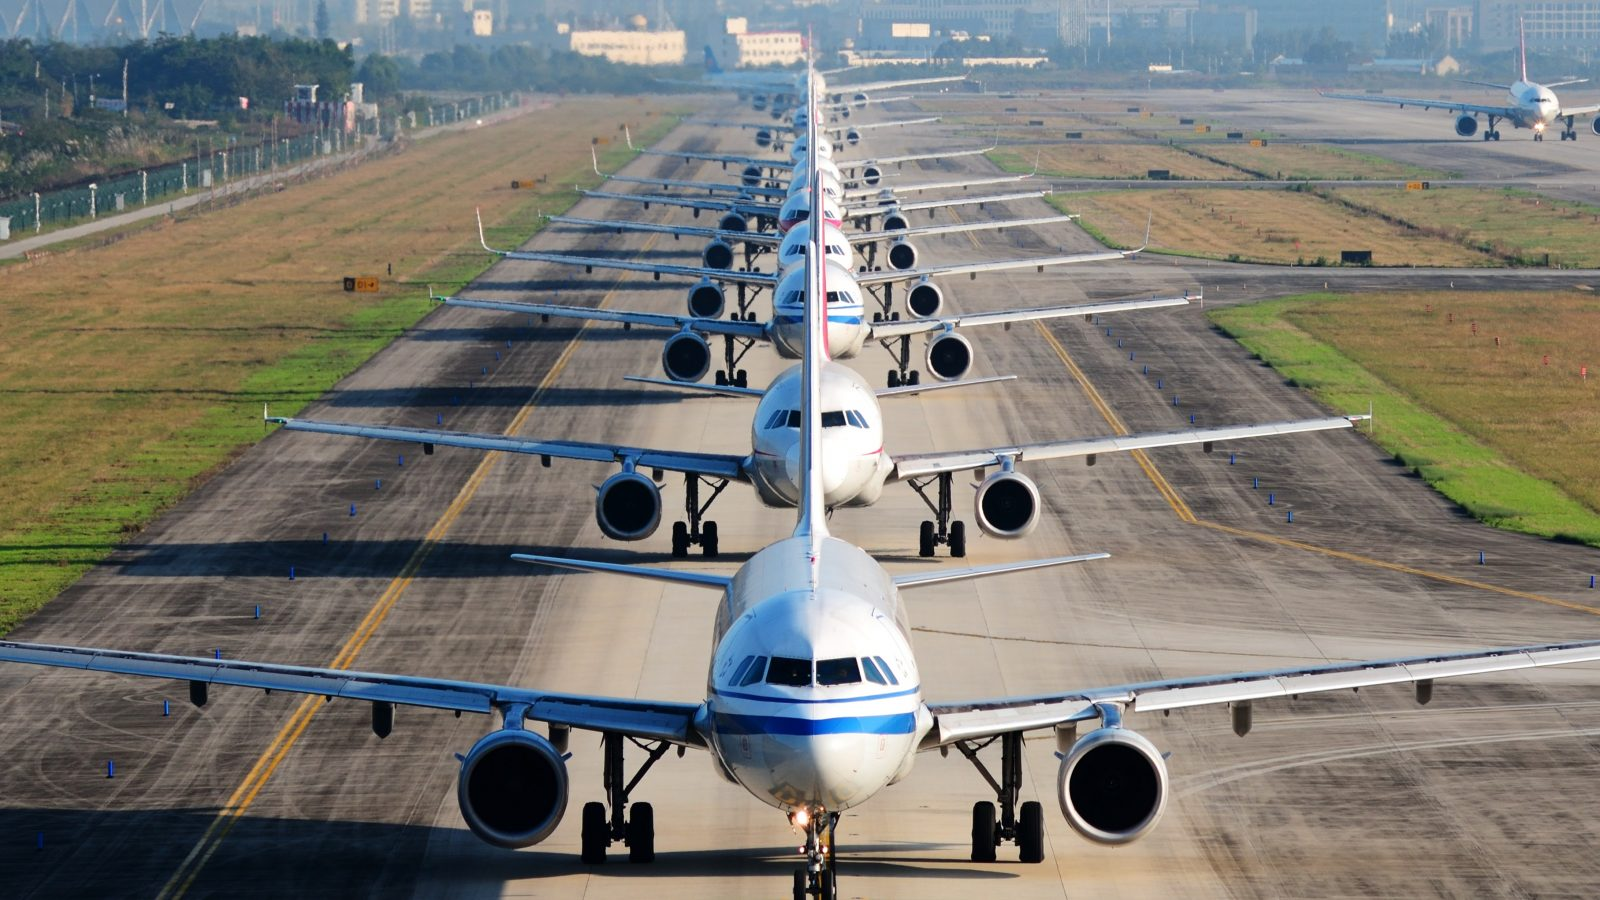 The image depicts several planes lined up on a runway.